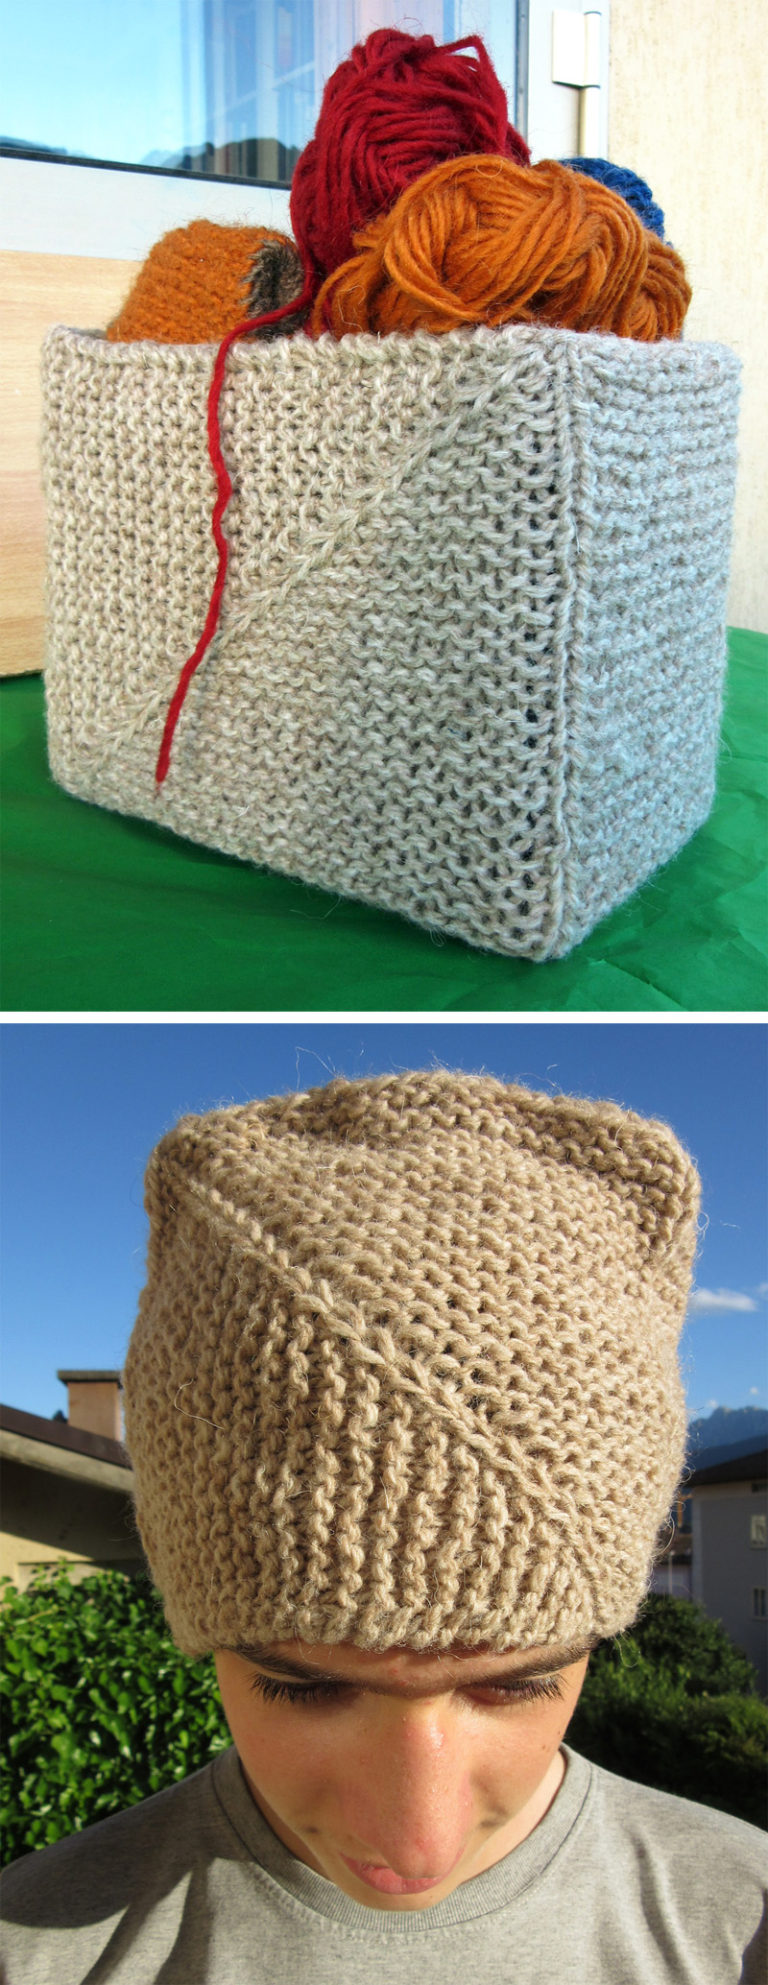 Free Knitting Pattern for Gennaio Basket